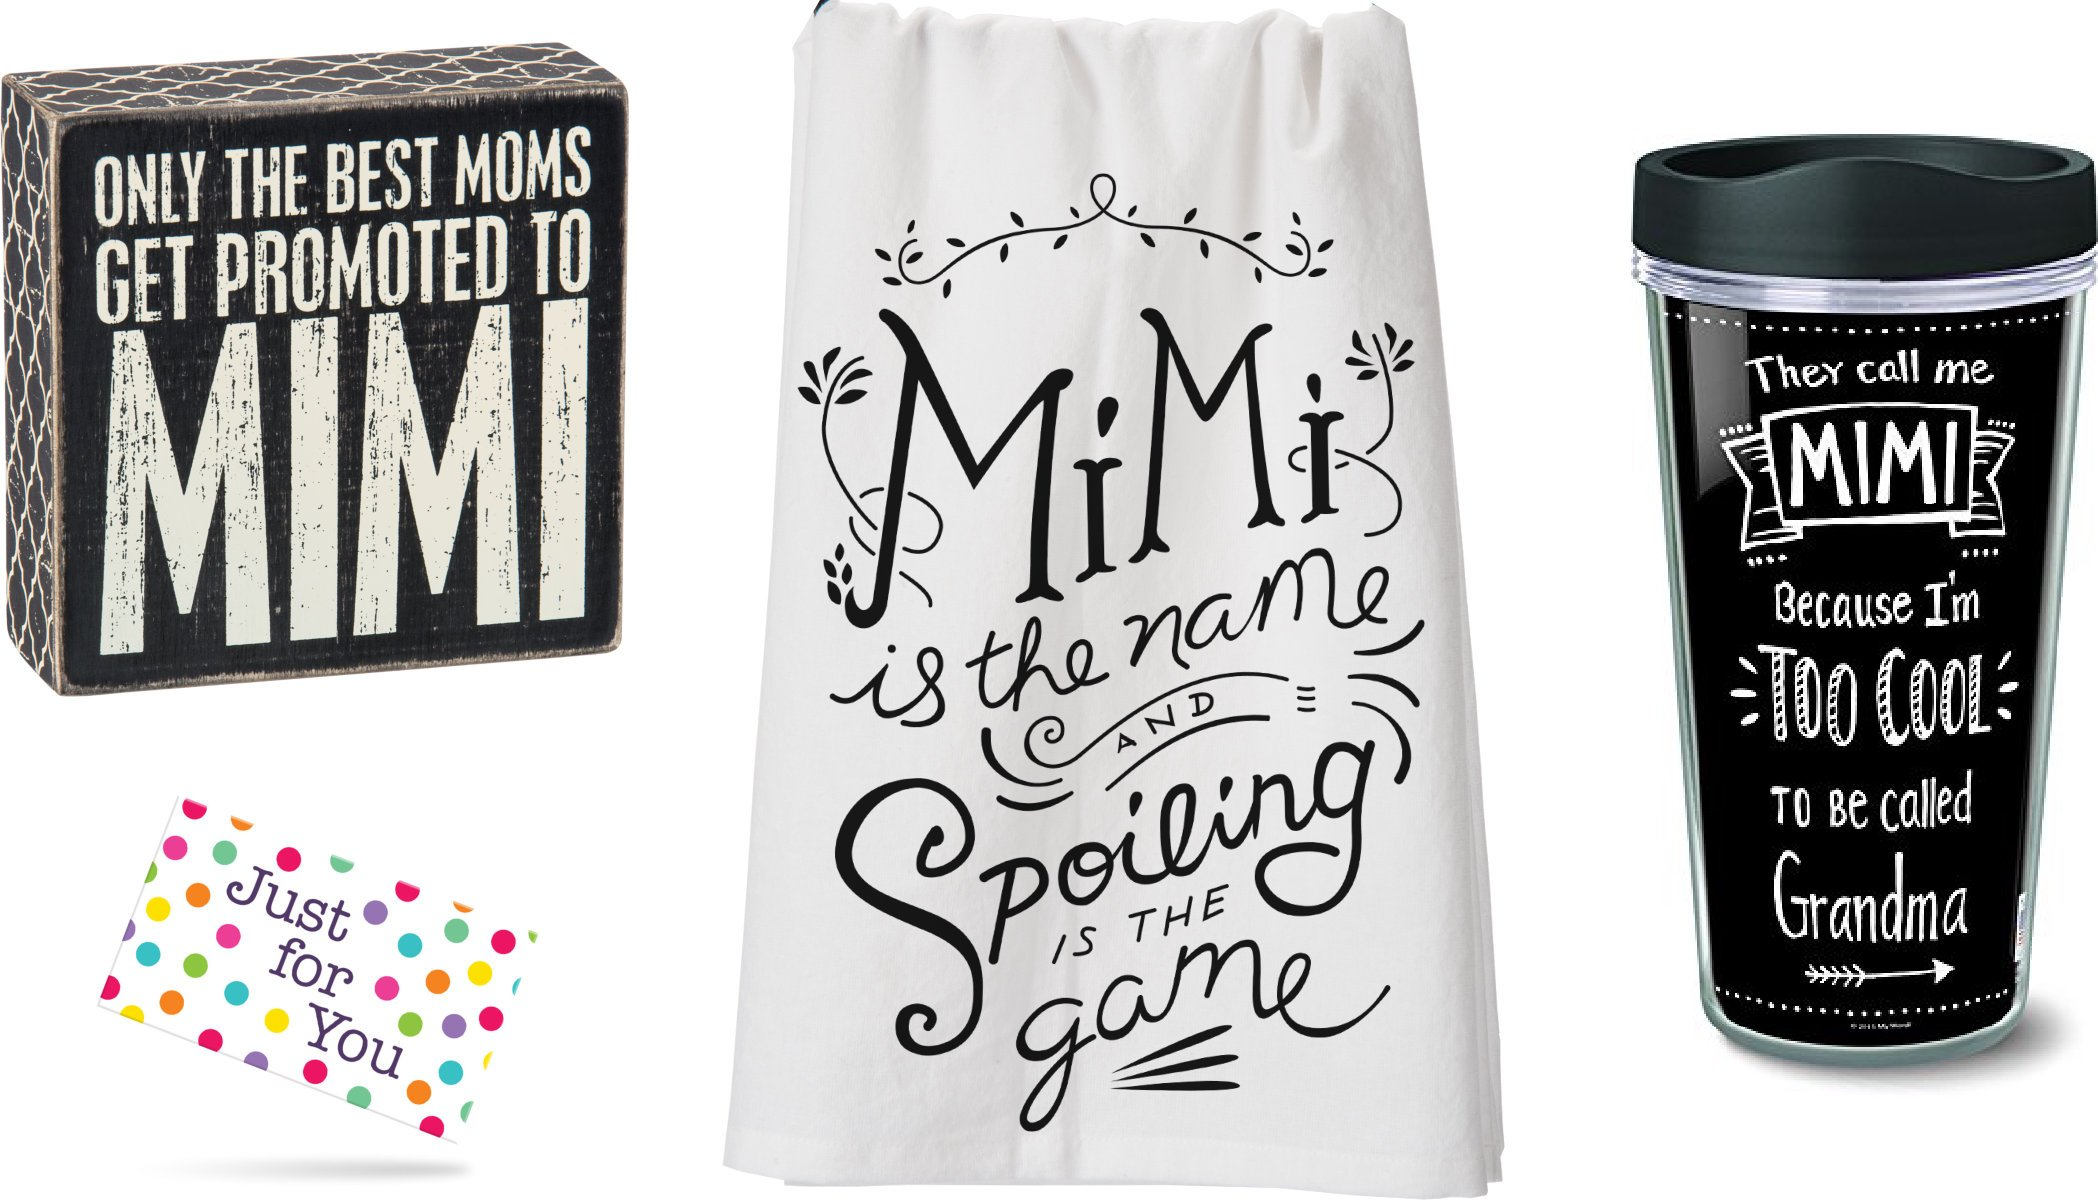 Mimi Travel Mug, Promoted to Mimi Box Sign, and Mimi Spoiling Kitchen Towel Set with Gift Tag by J4U